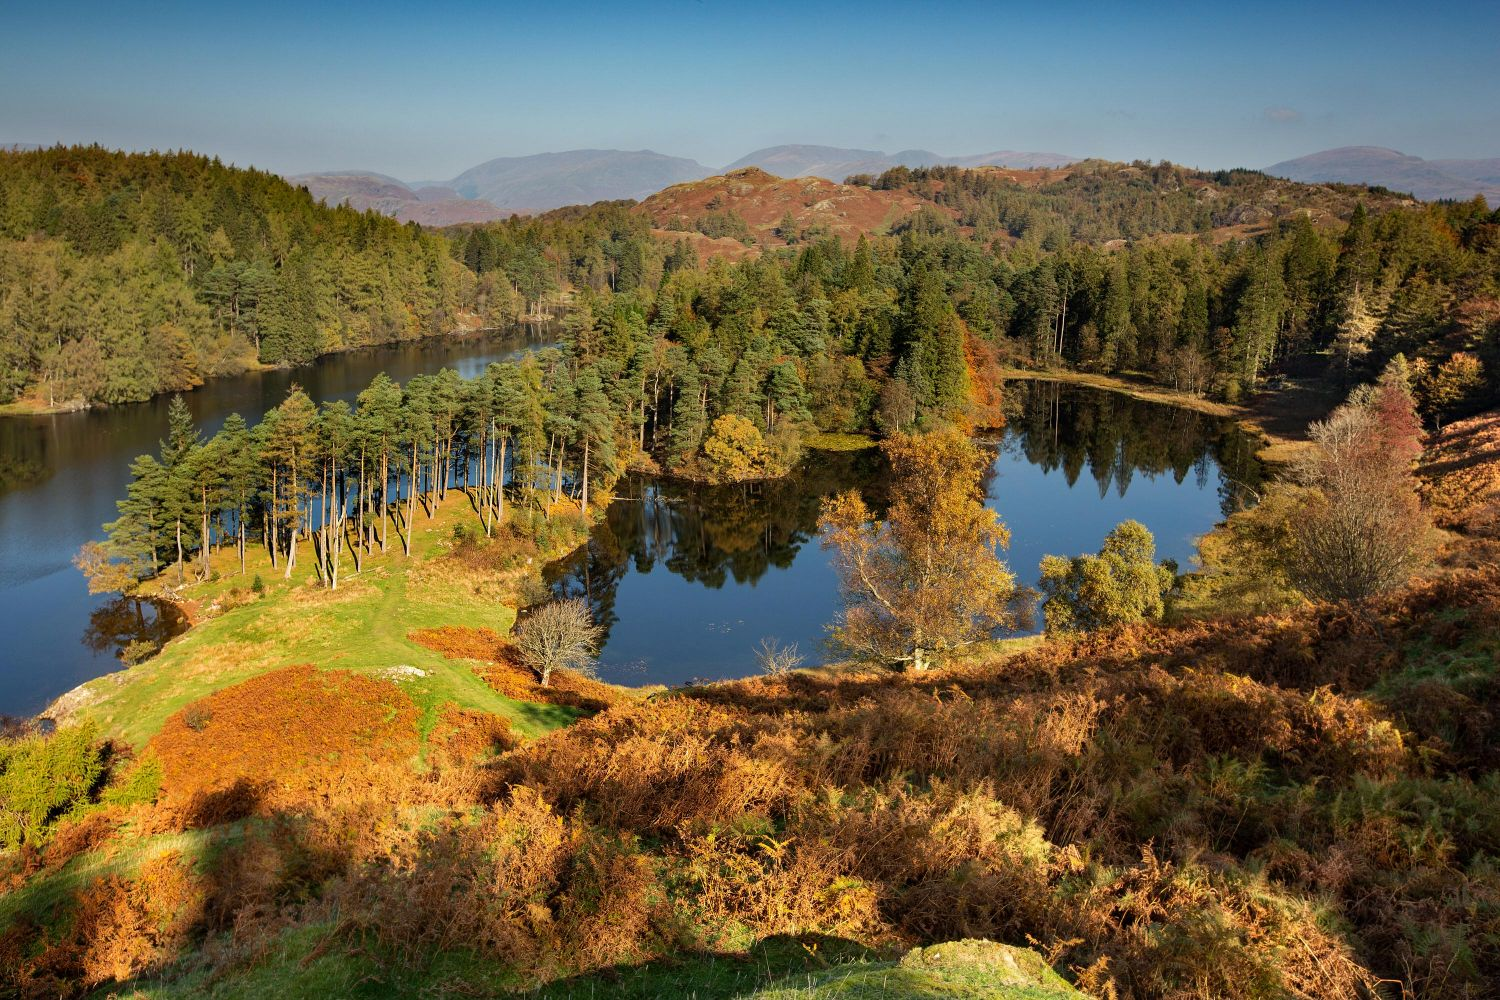 Tarn Hows bathed in autumn sunshine